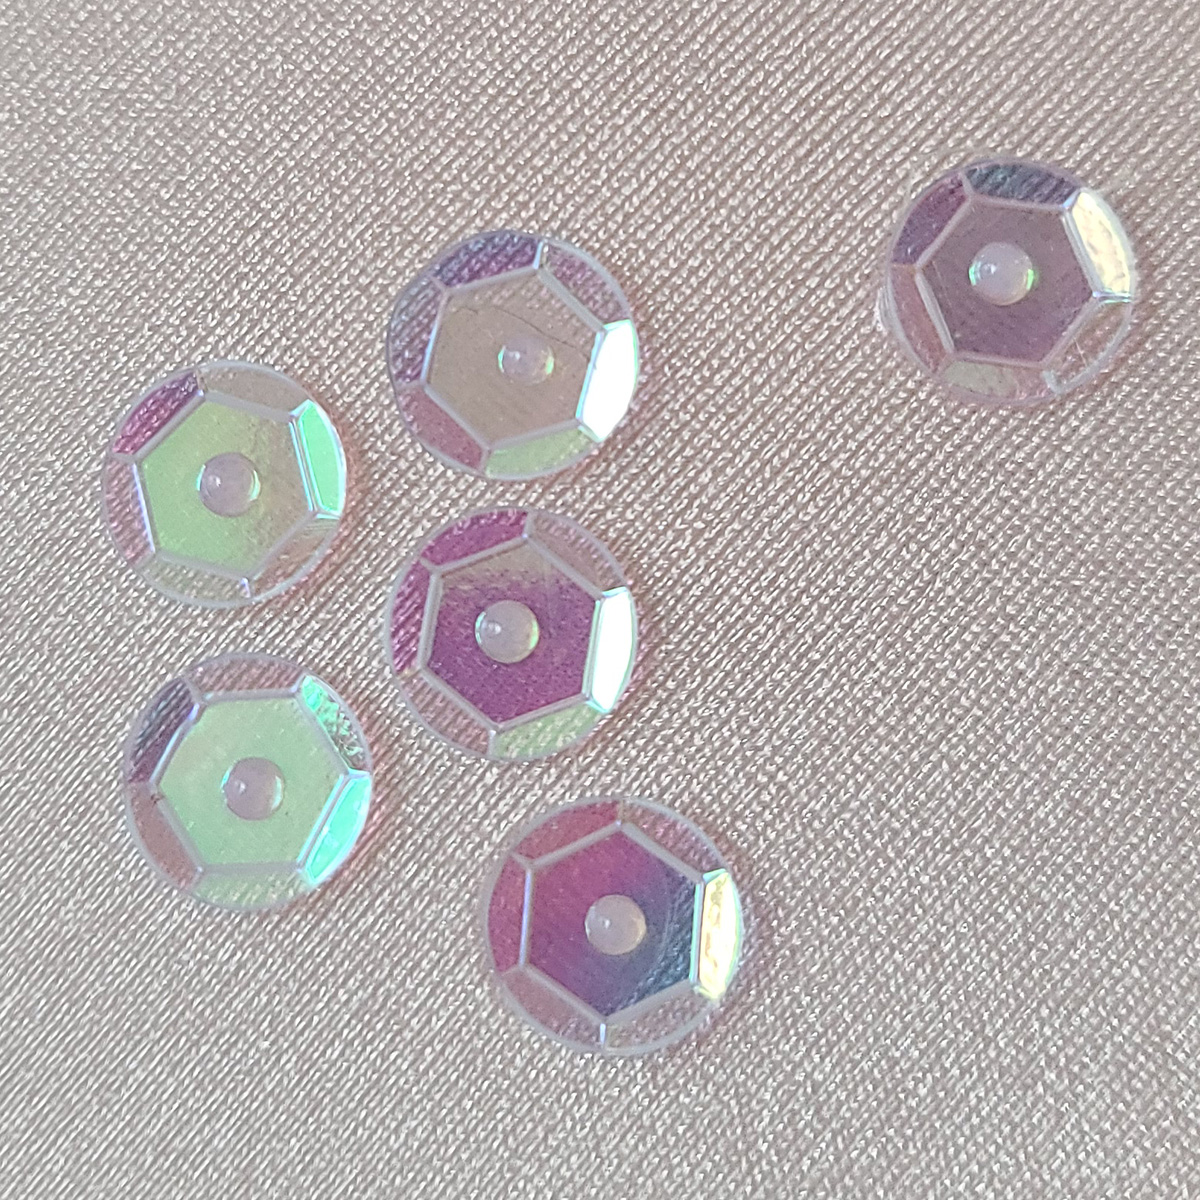 Several clear, iridescent faceted sequins, glued to a light pink stretched spandex.